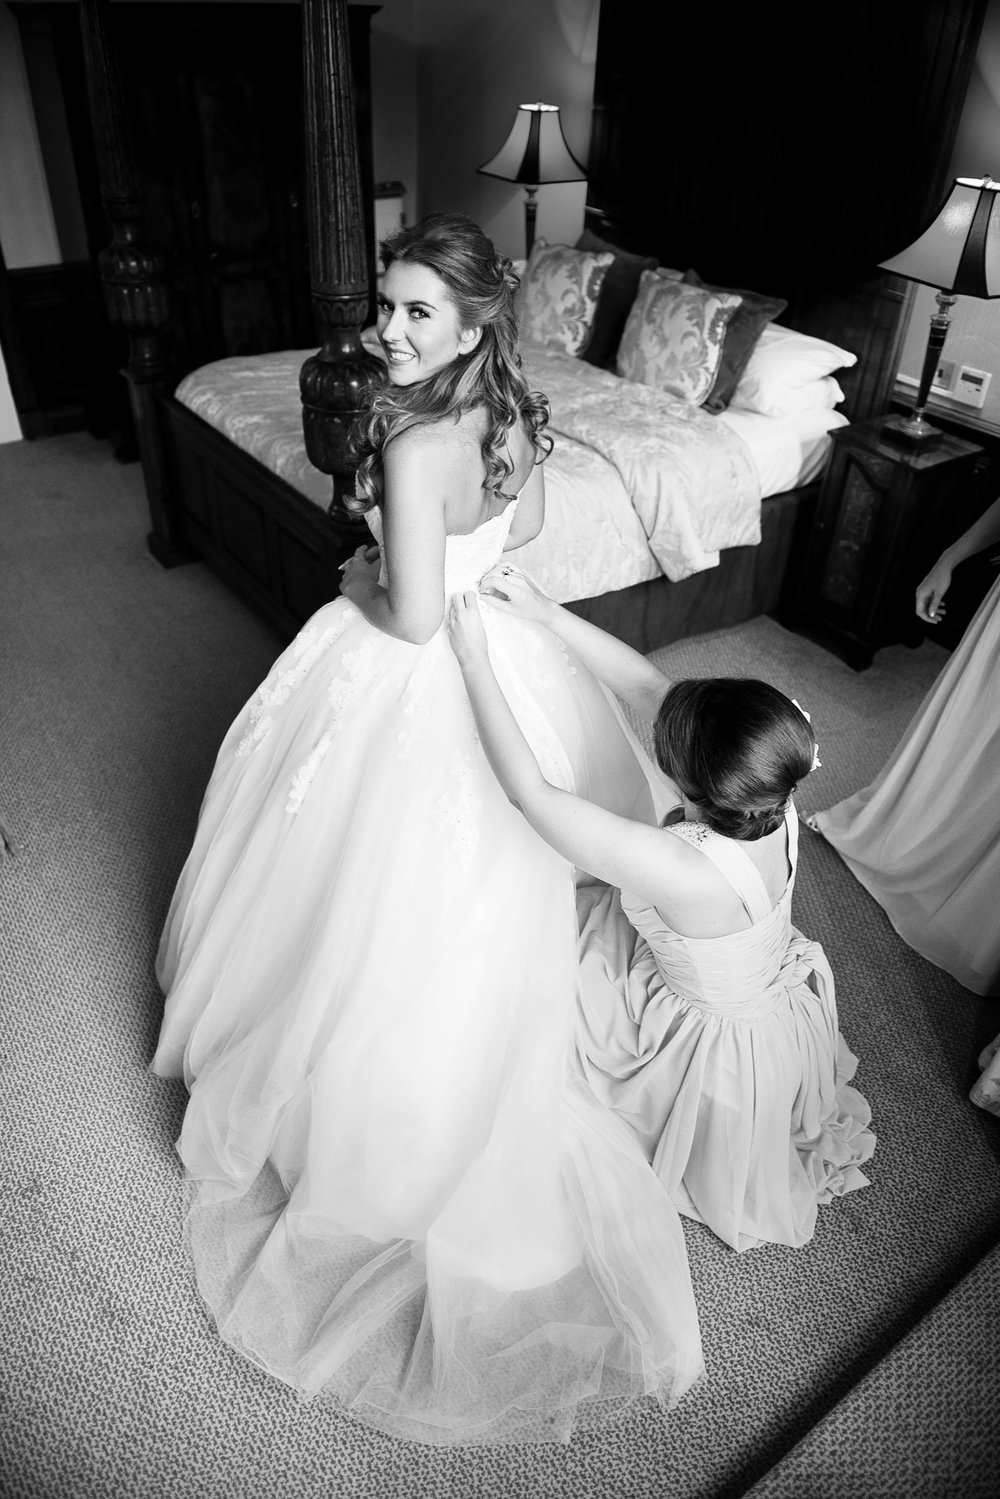 Spending time in the bridal suit with the bride and her bridesmaids produces pictures which reflect the excitement and emotion